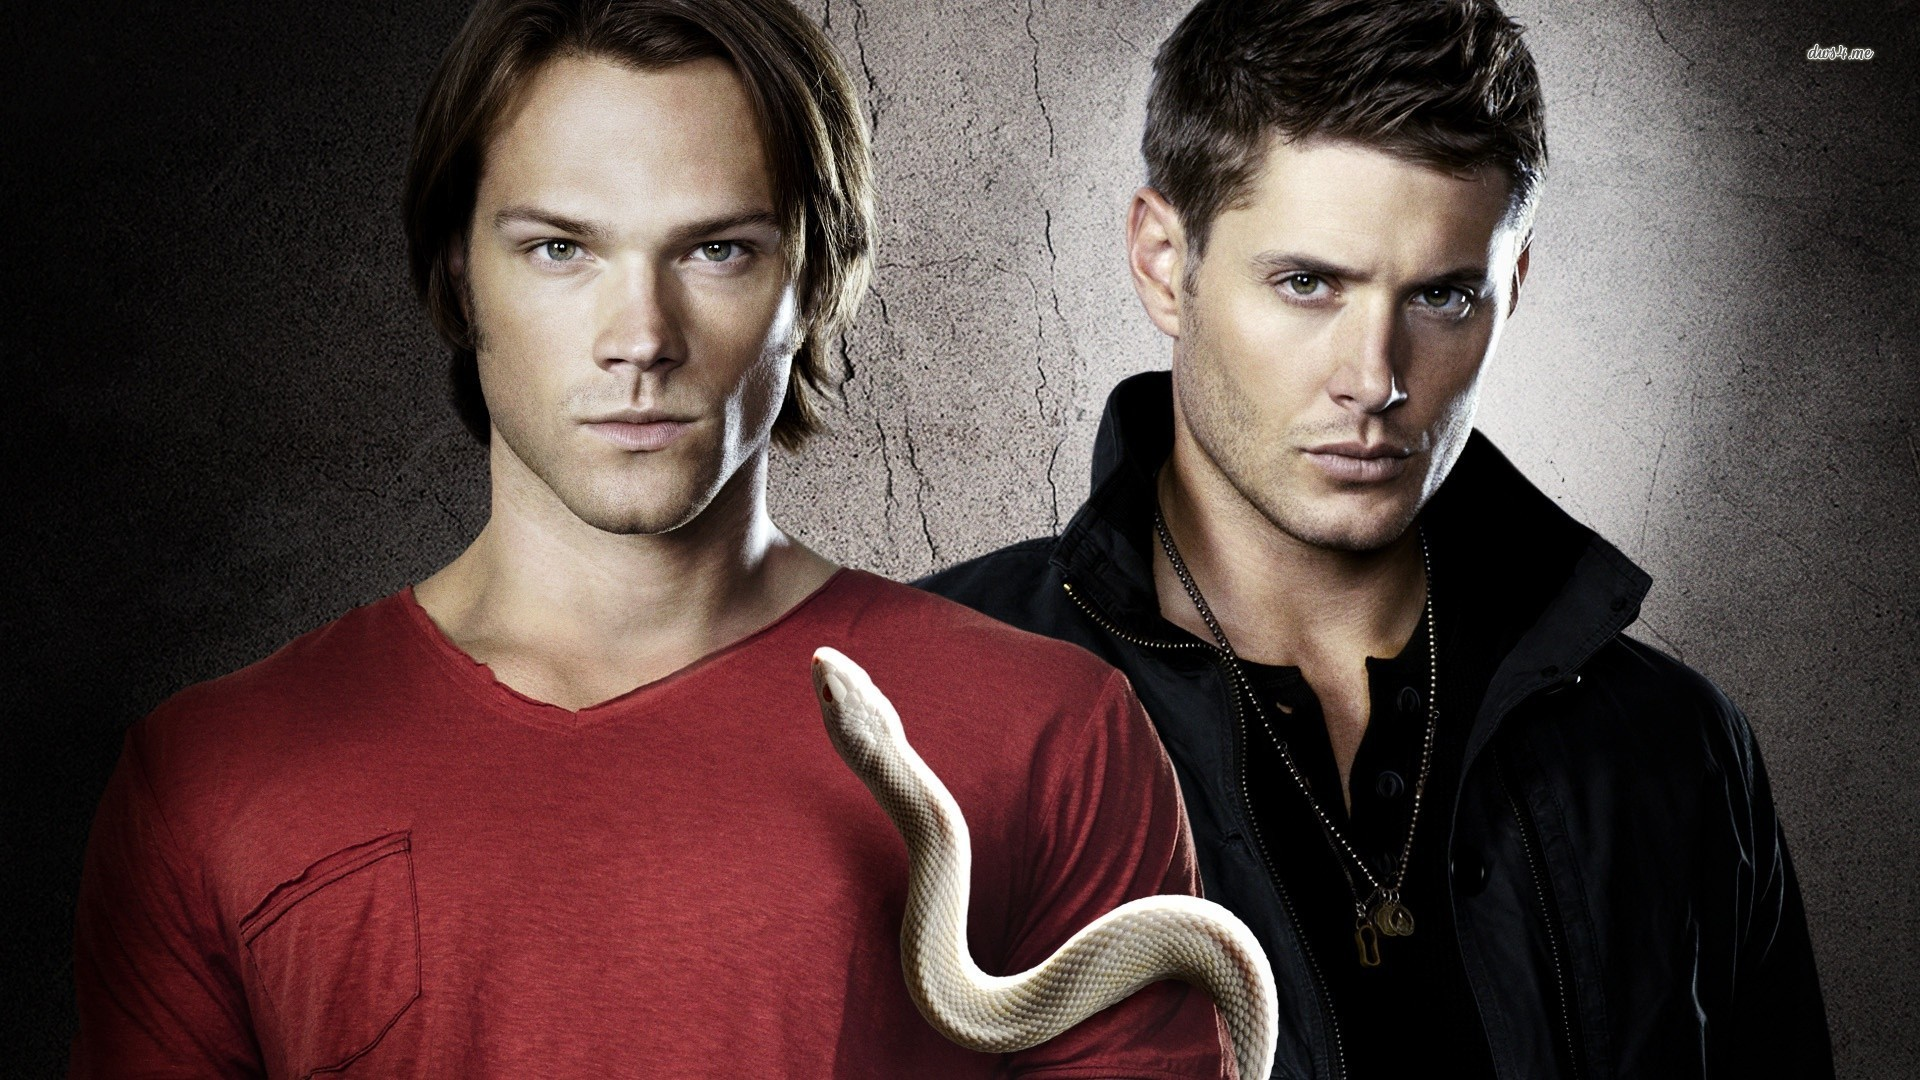 supernatural wallpapers snake